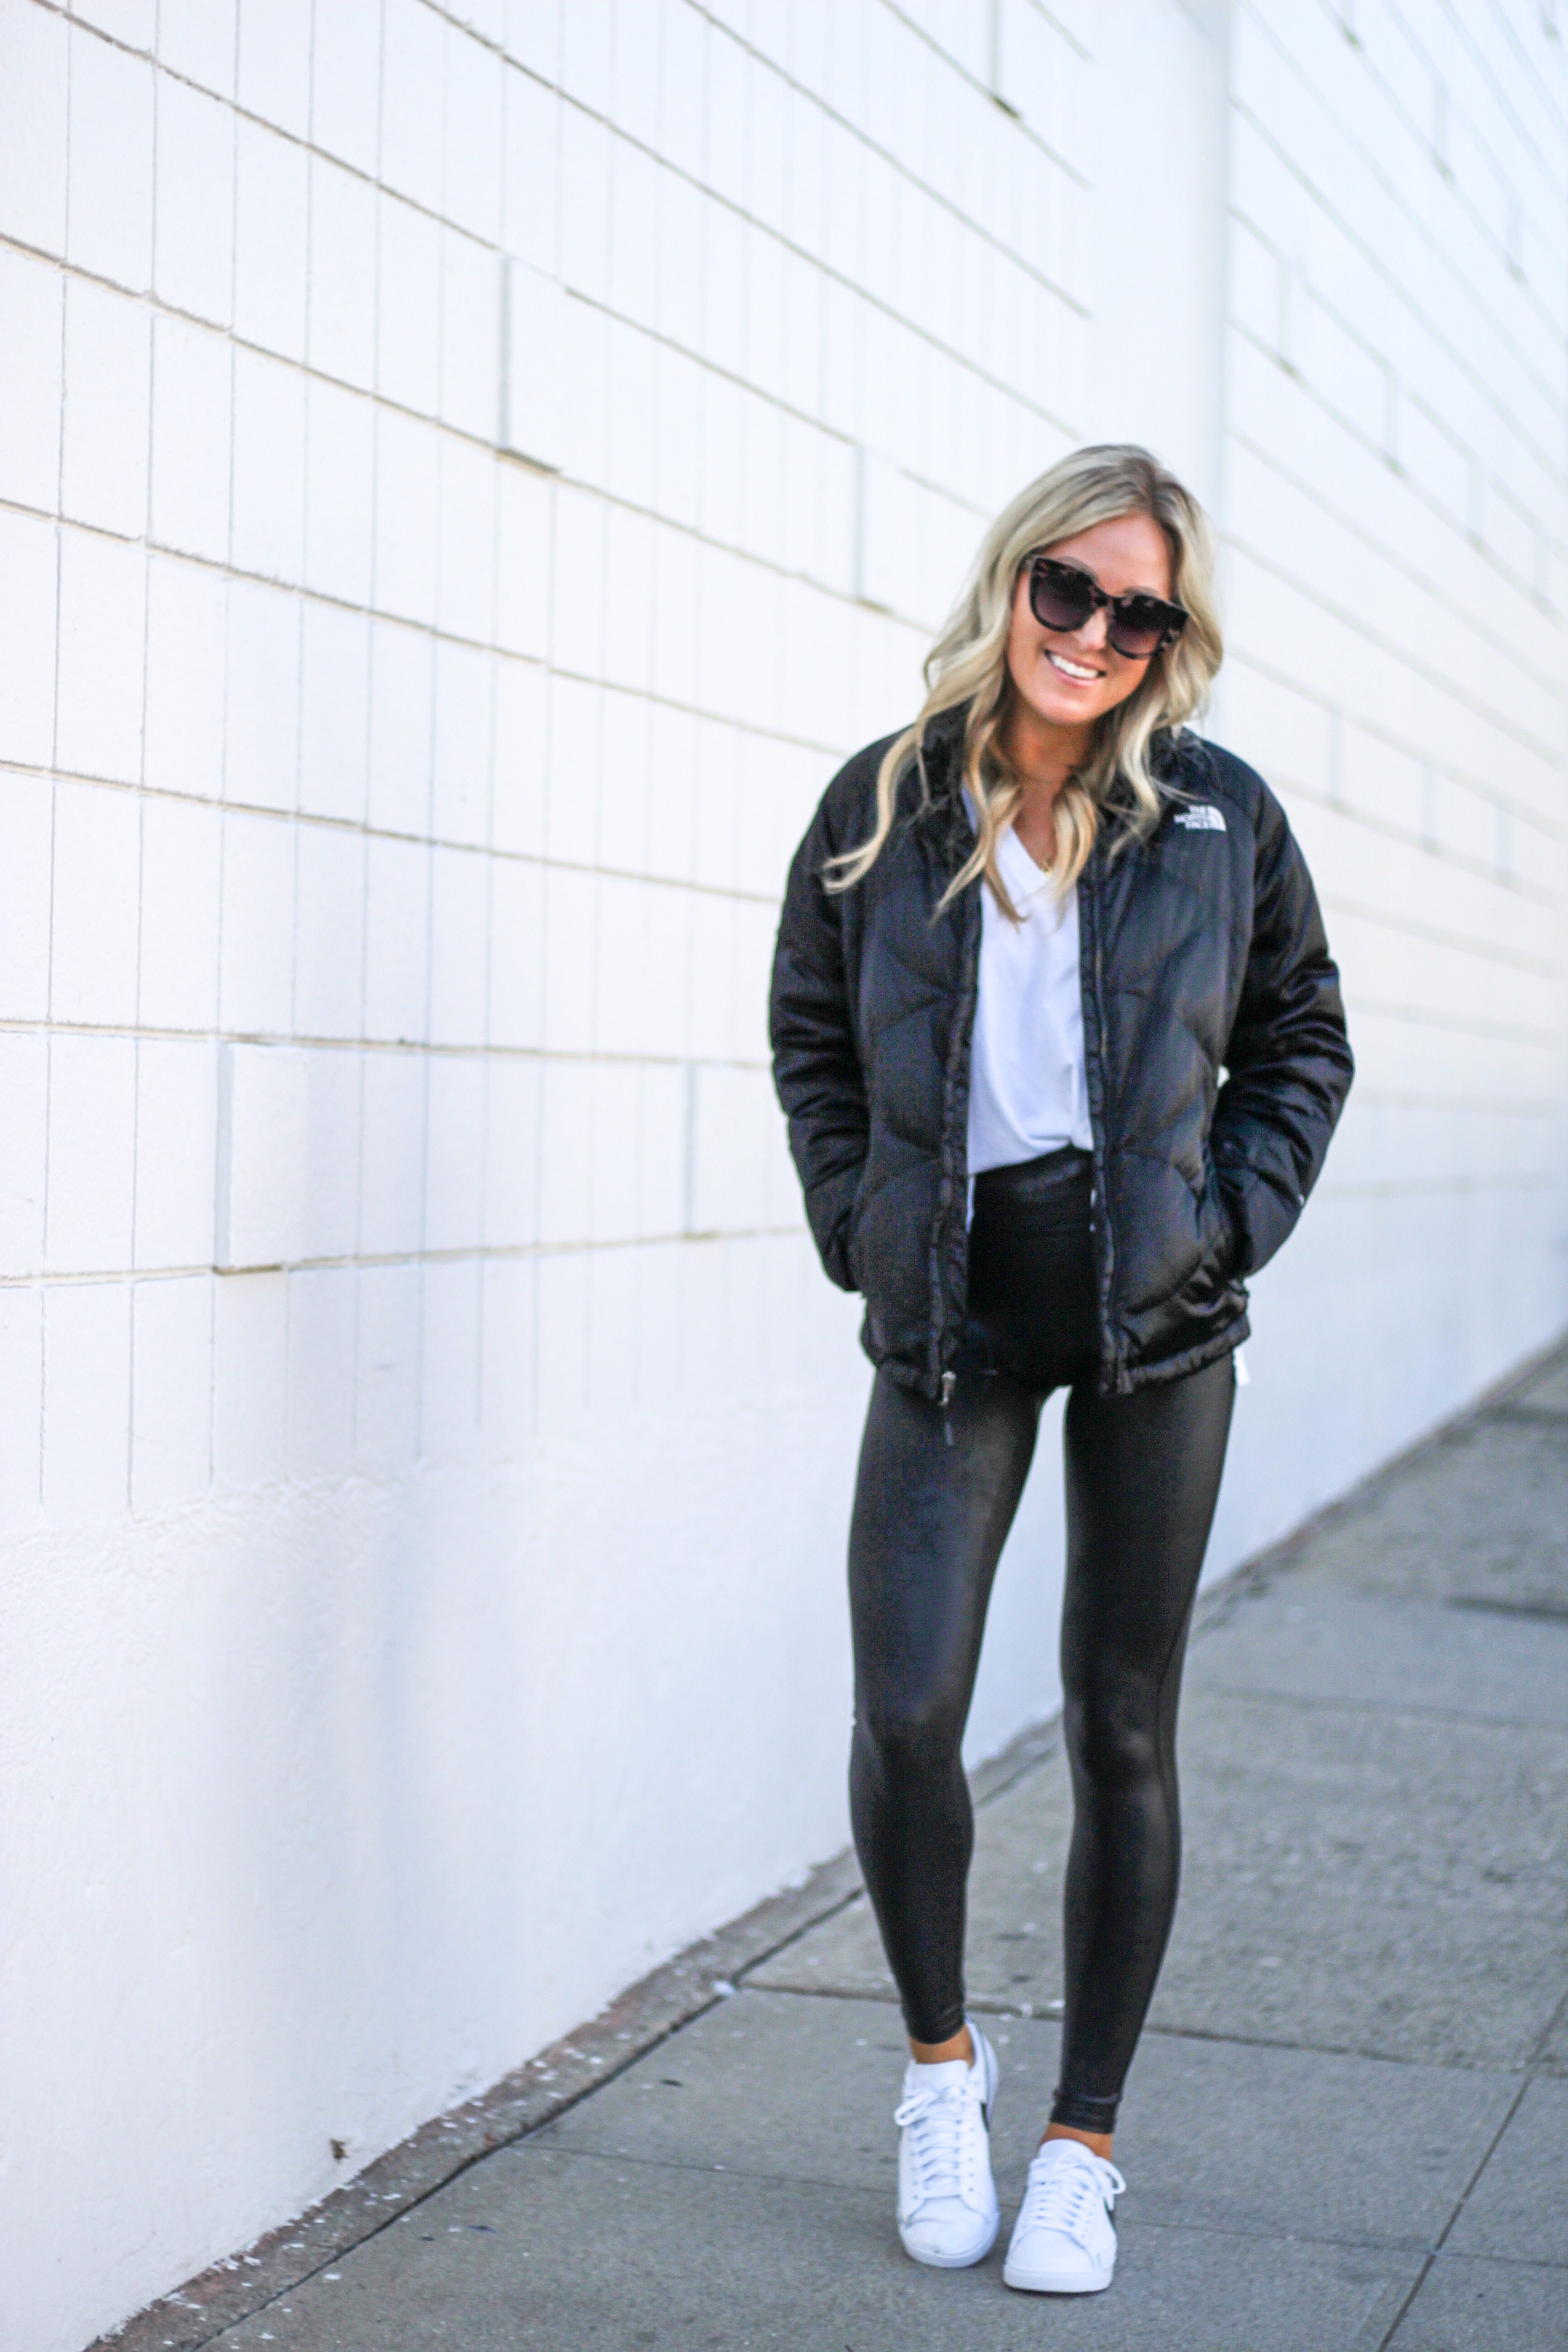 62a1489bc LEGGINGS  Spanx    JACKET  North Face (love this North Face vest)    TEE   Halogen    SHOES  Nike (I love these Nike sneakers too)    SUNGLASSES  Le  Specs